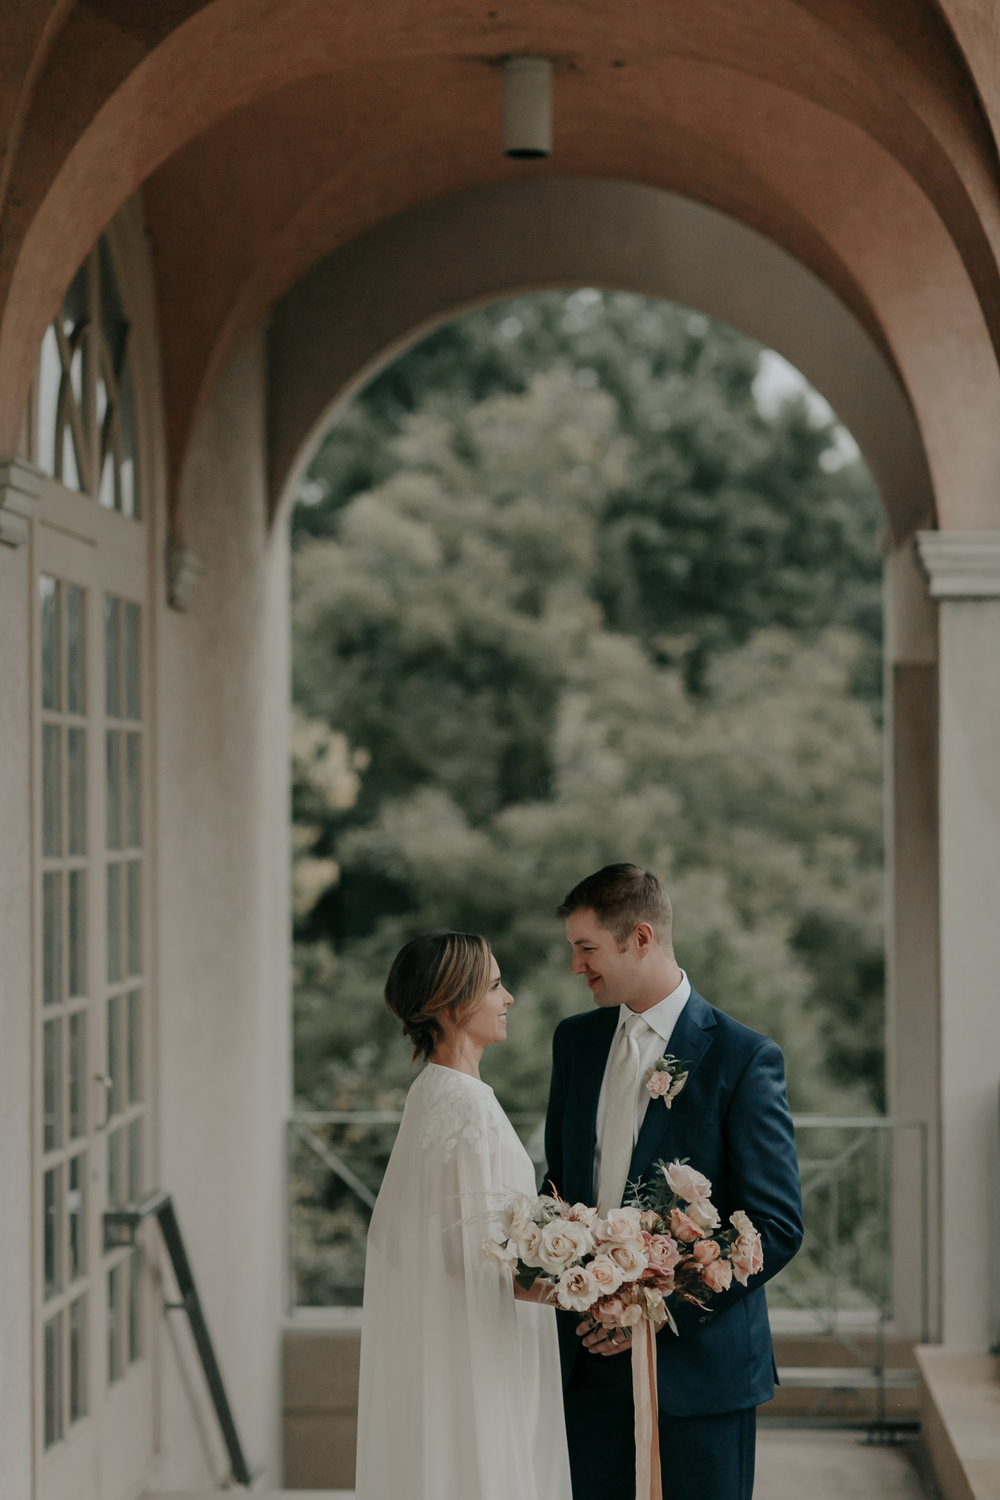 Bride+Groom10.13.18-45.jpg